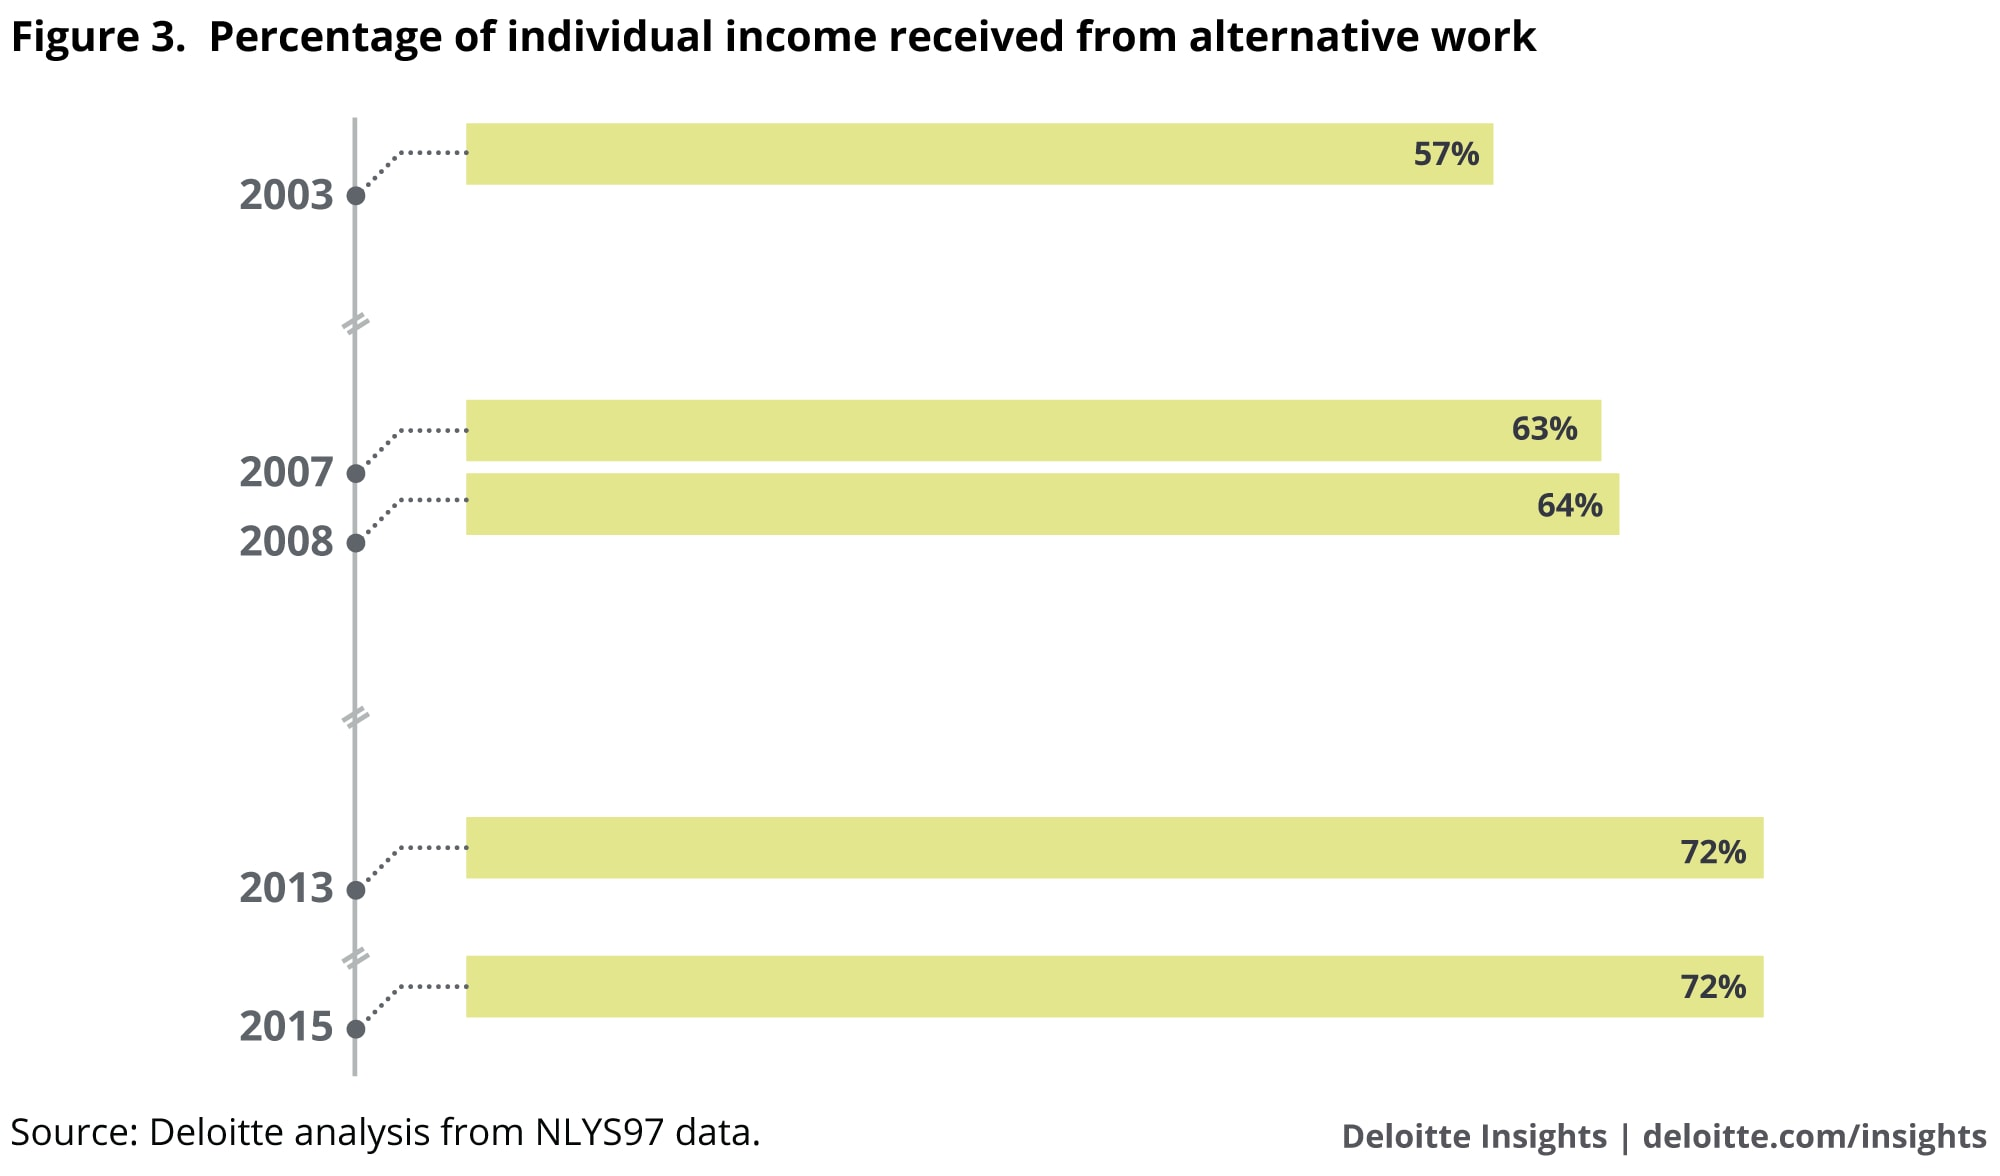 Percentage of household income received from alternative work